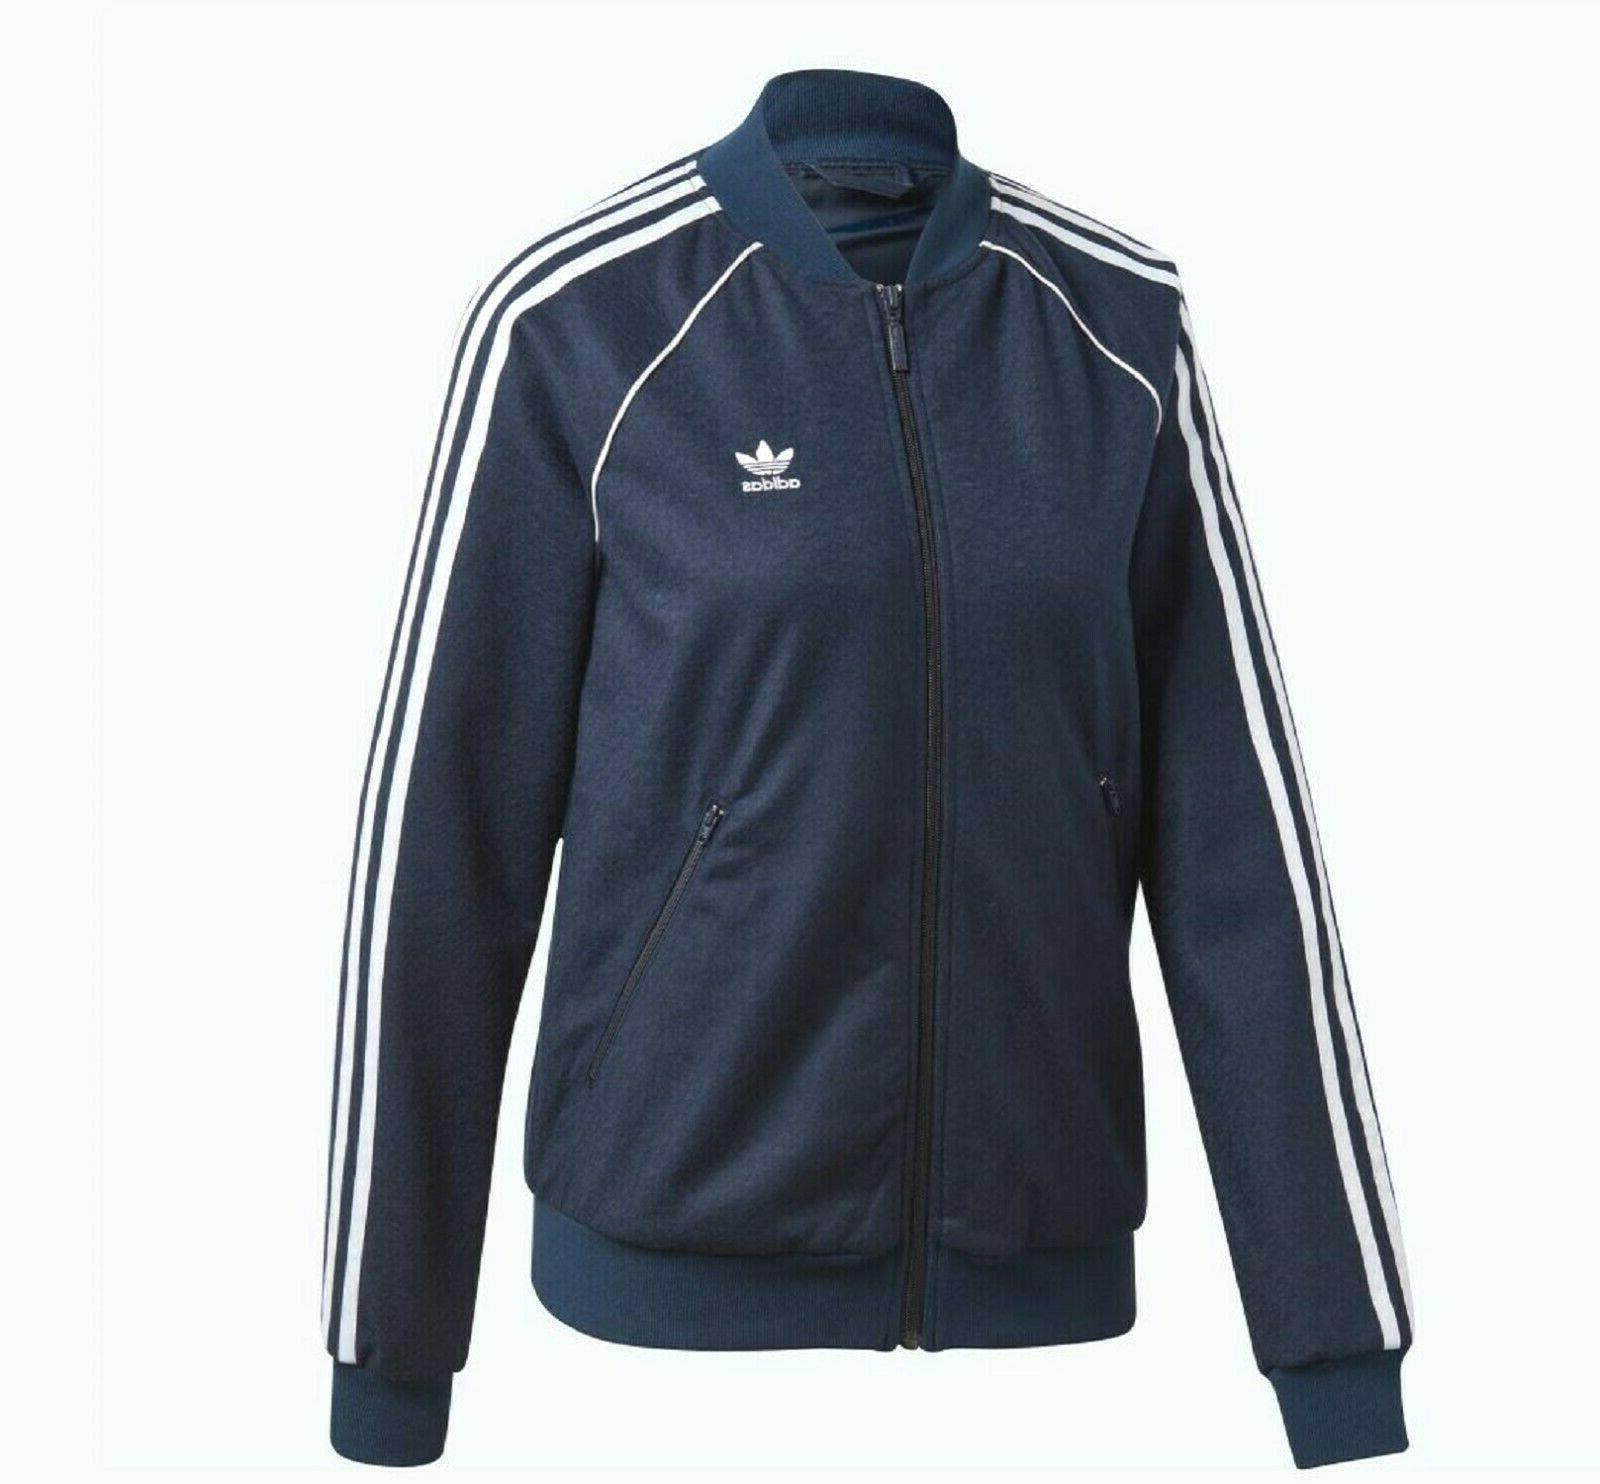 NEW SUPERSTAR TREFOIL TRACK JACKET ~ MEDIUM DH3101 NAVY